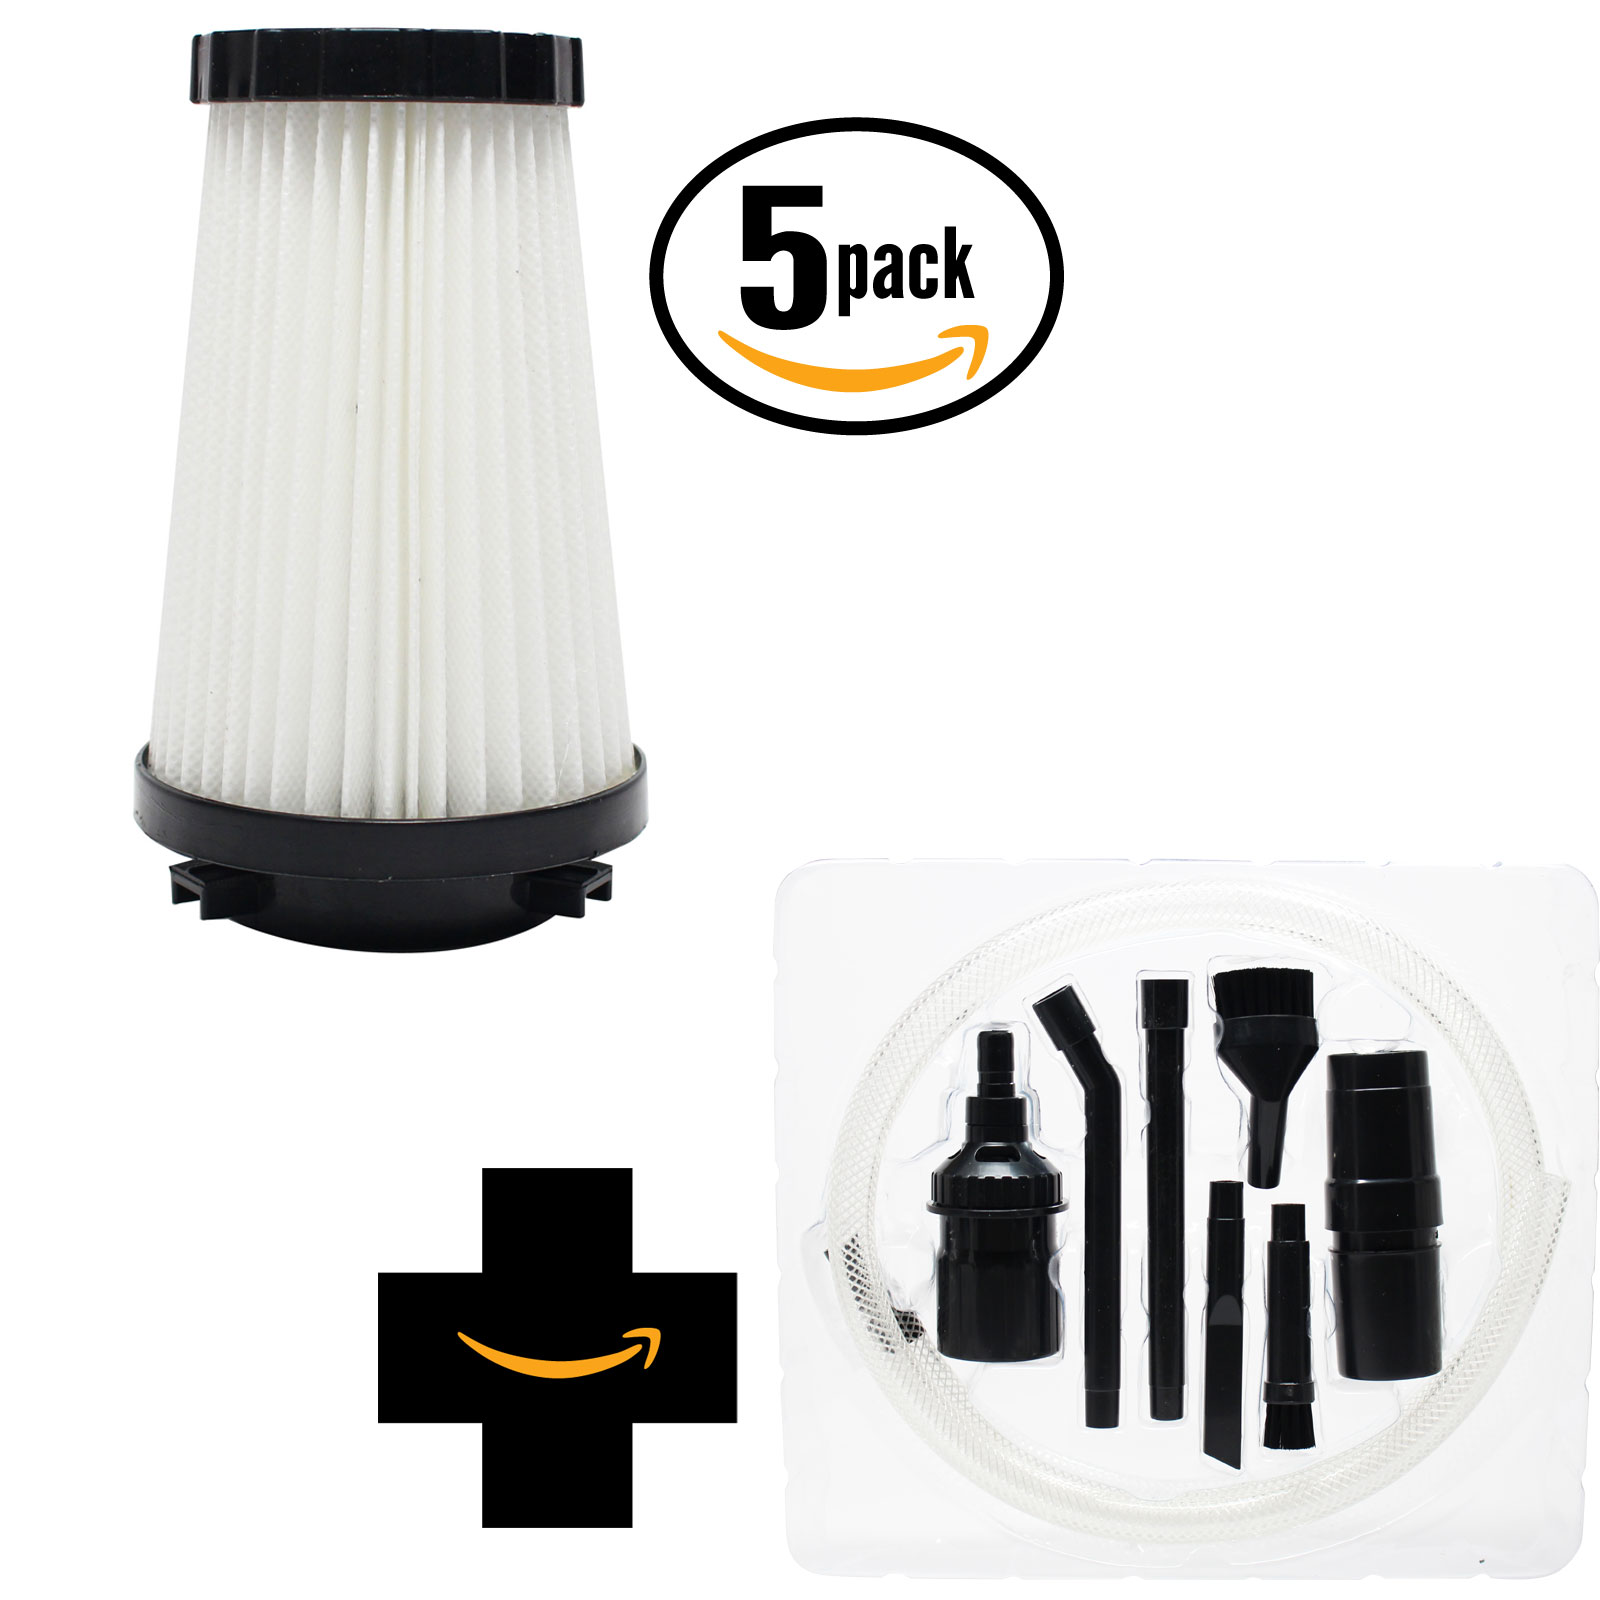 5-Pack Replacement Dirt Devil UD40225 Vacuum HEPA Filter with 7-Piece Micro Vacuum Attachment Kit - Compatible Dirt Devil 3SFA11500X, F2 HEPA Filter